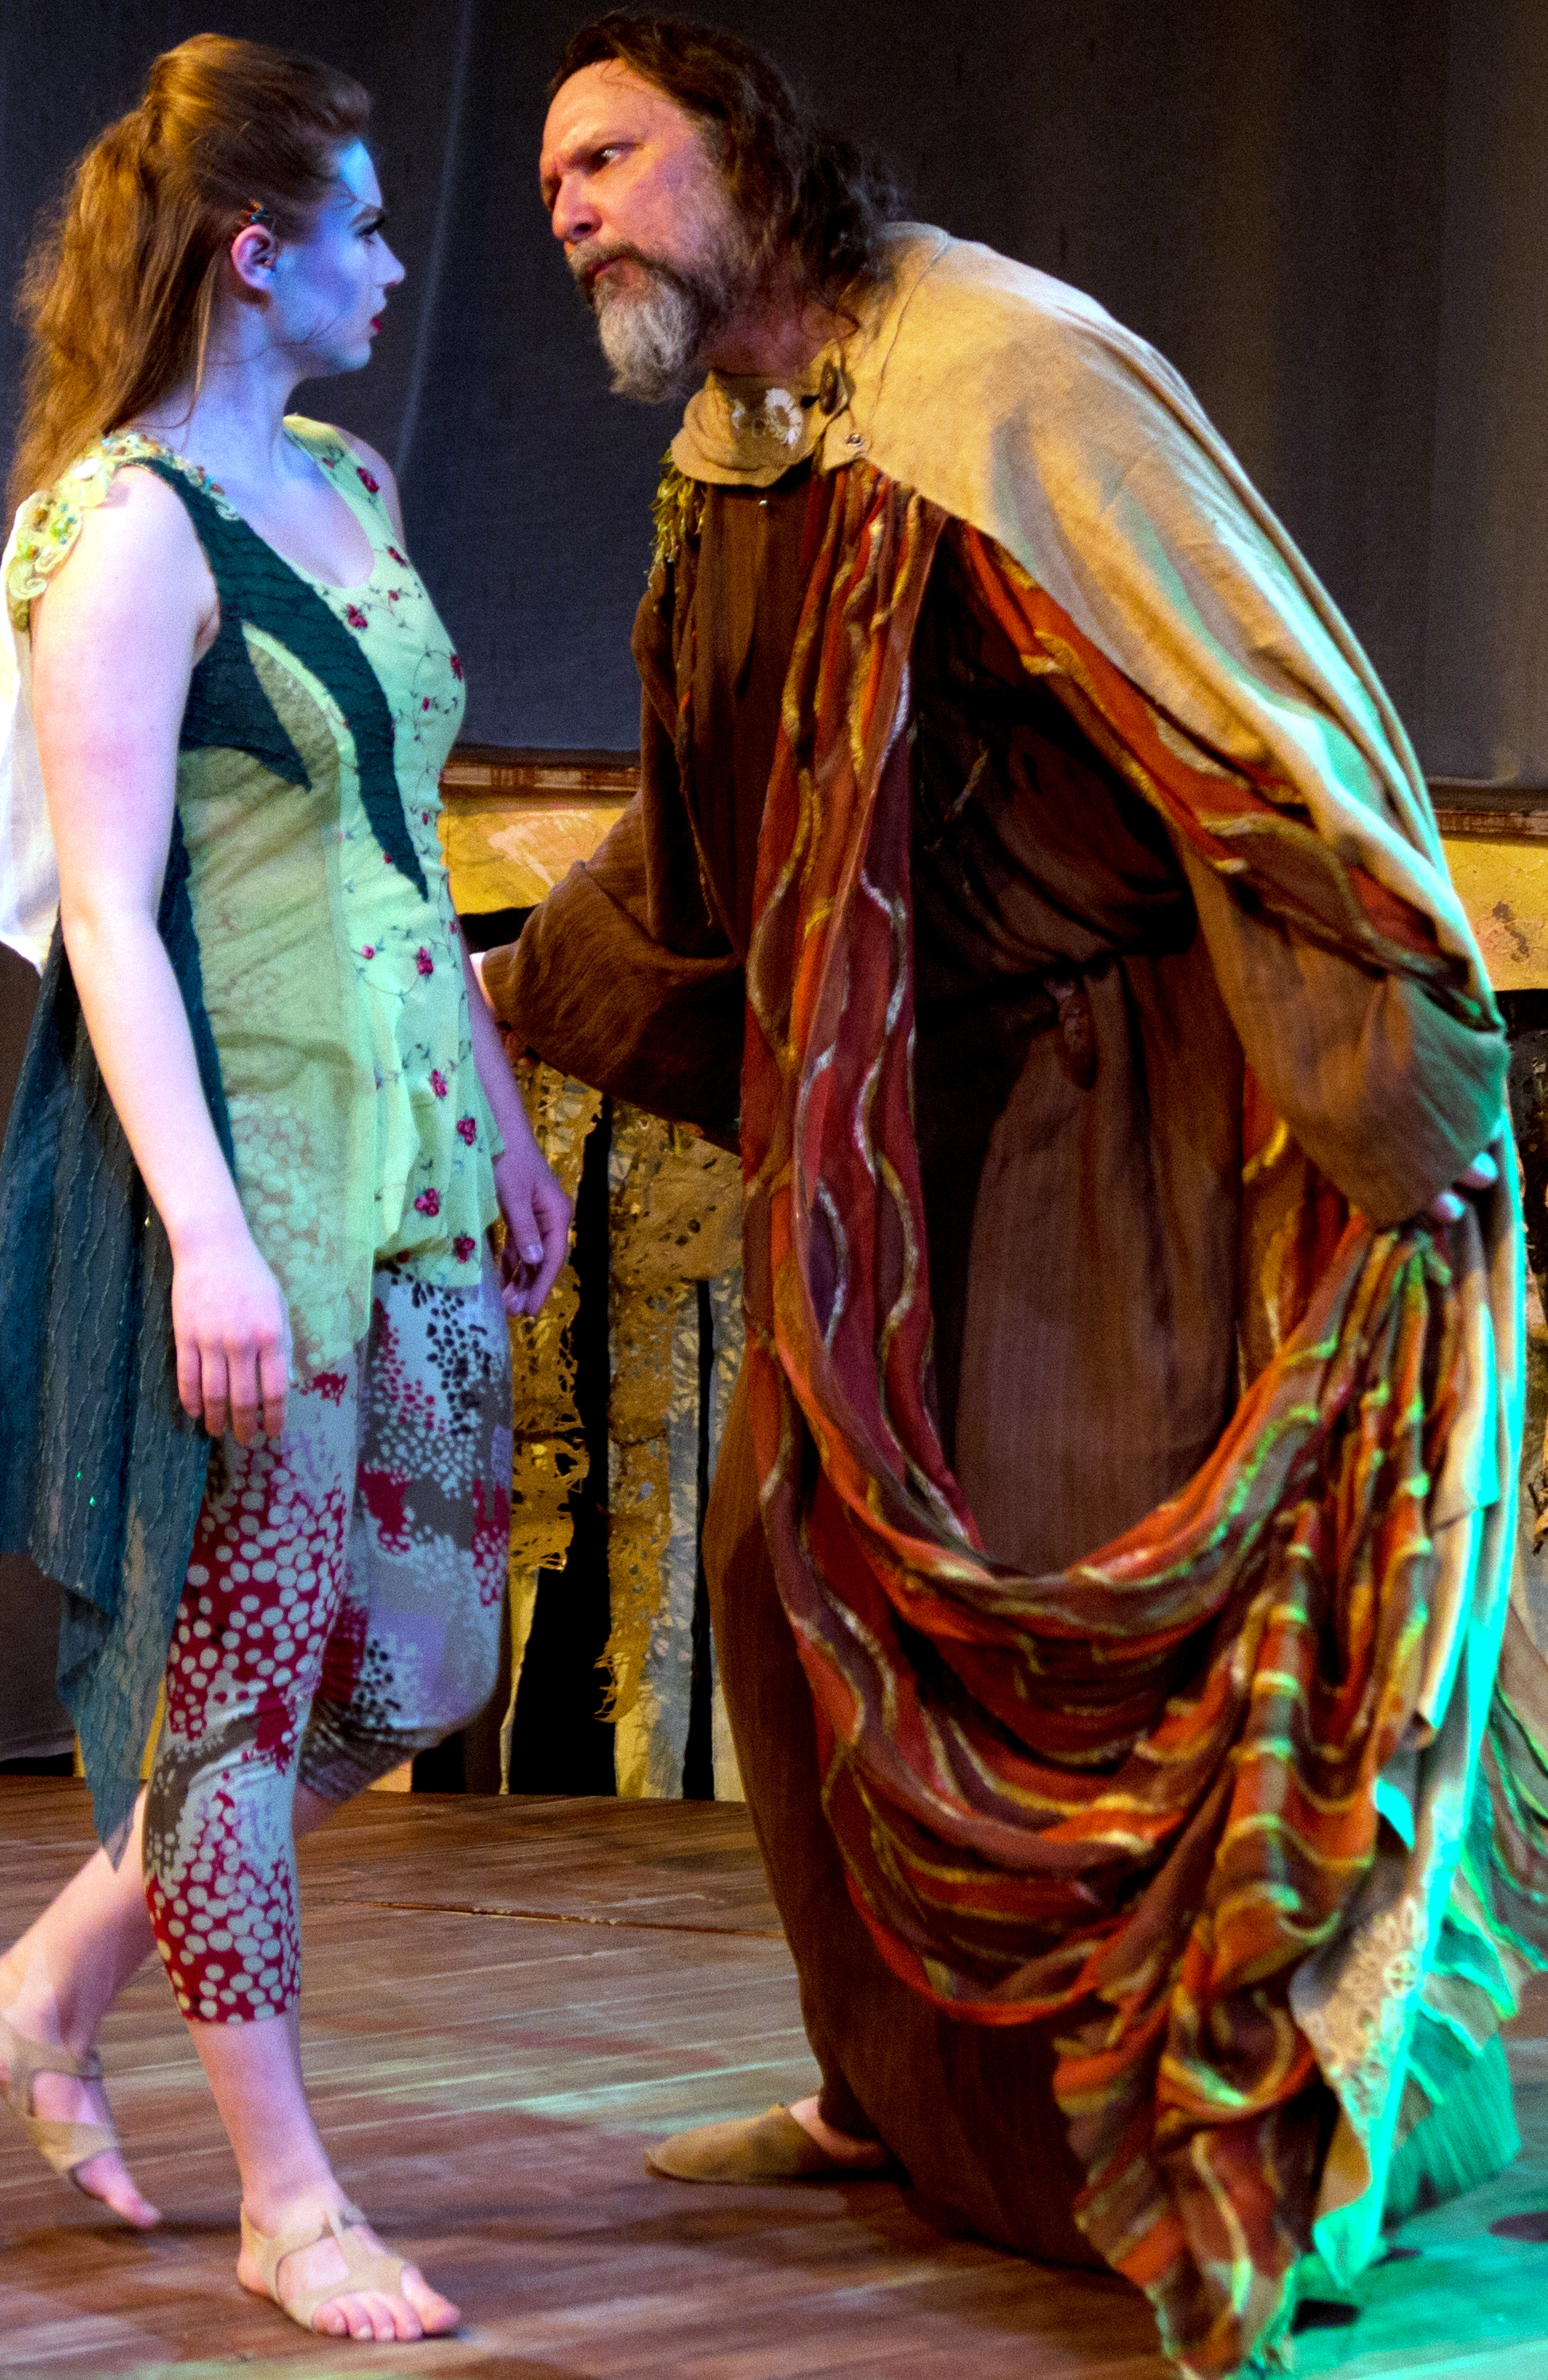 an analysis of the heart of the savage in the tempest The tempest: plot summary act 1, scene 1 caliban, a disfigured and savage offspring of the dead witch, sycorax despite prospero's attempts to tame him, caliban has remained wide and barbaric, and has even attempted to rape miranda.